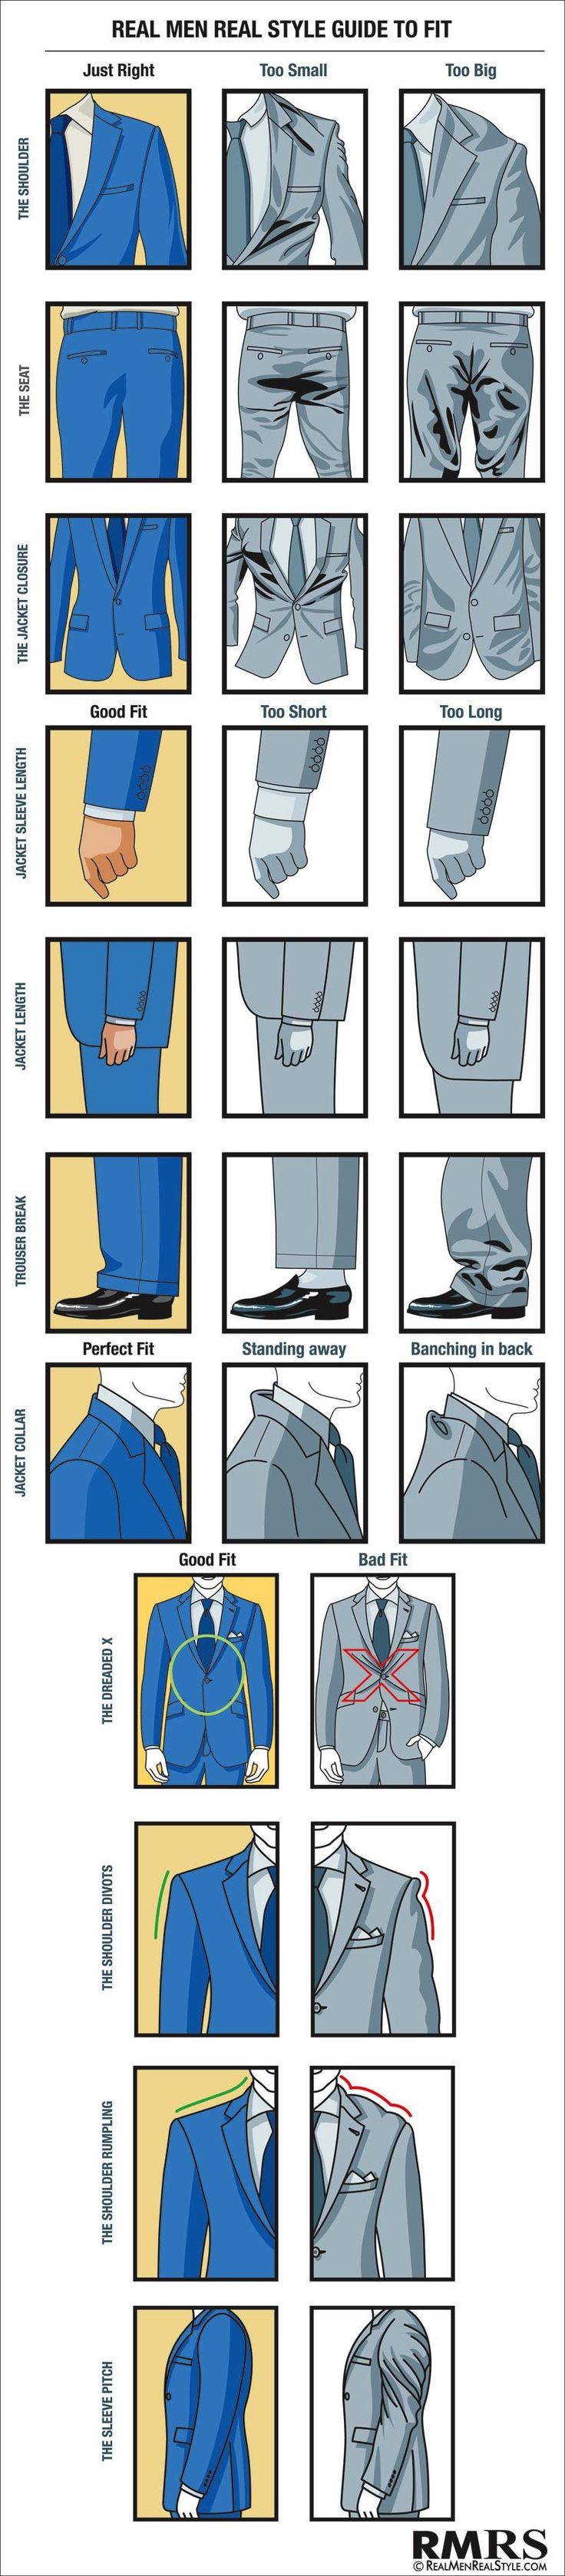 This visual guide from Real Men Real Style will help you make sure your suit fits perfectly, from collar to cuffs.